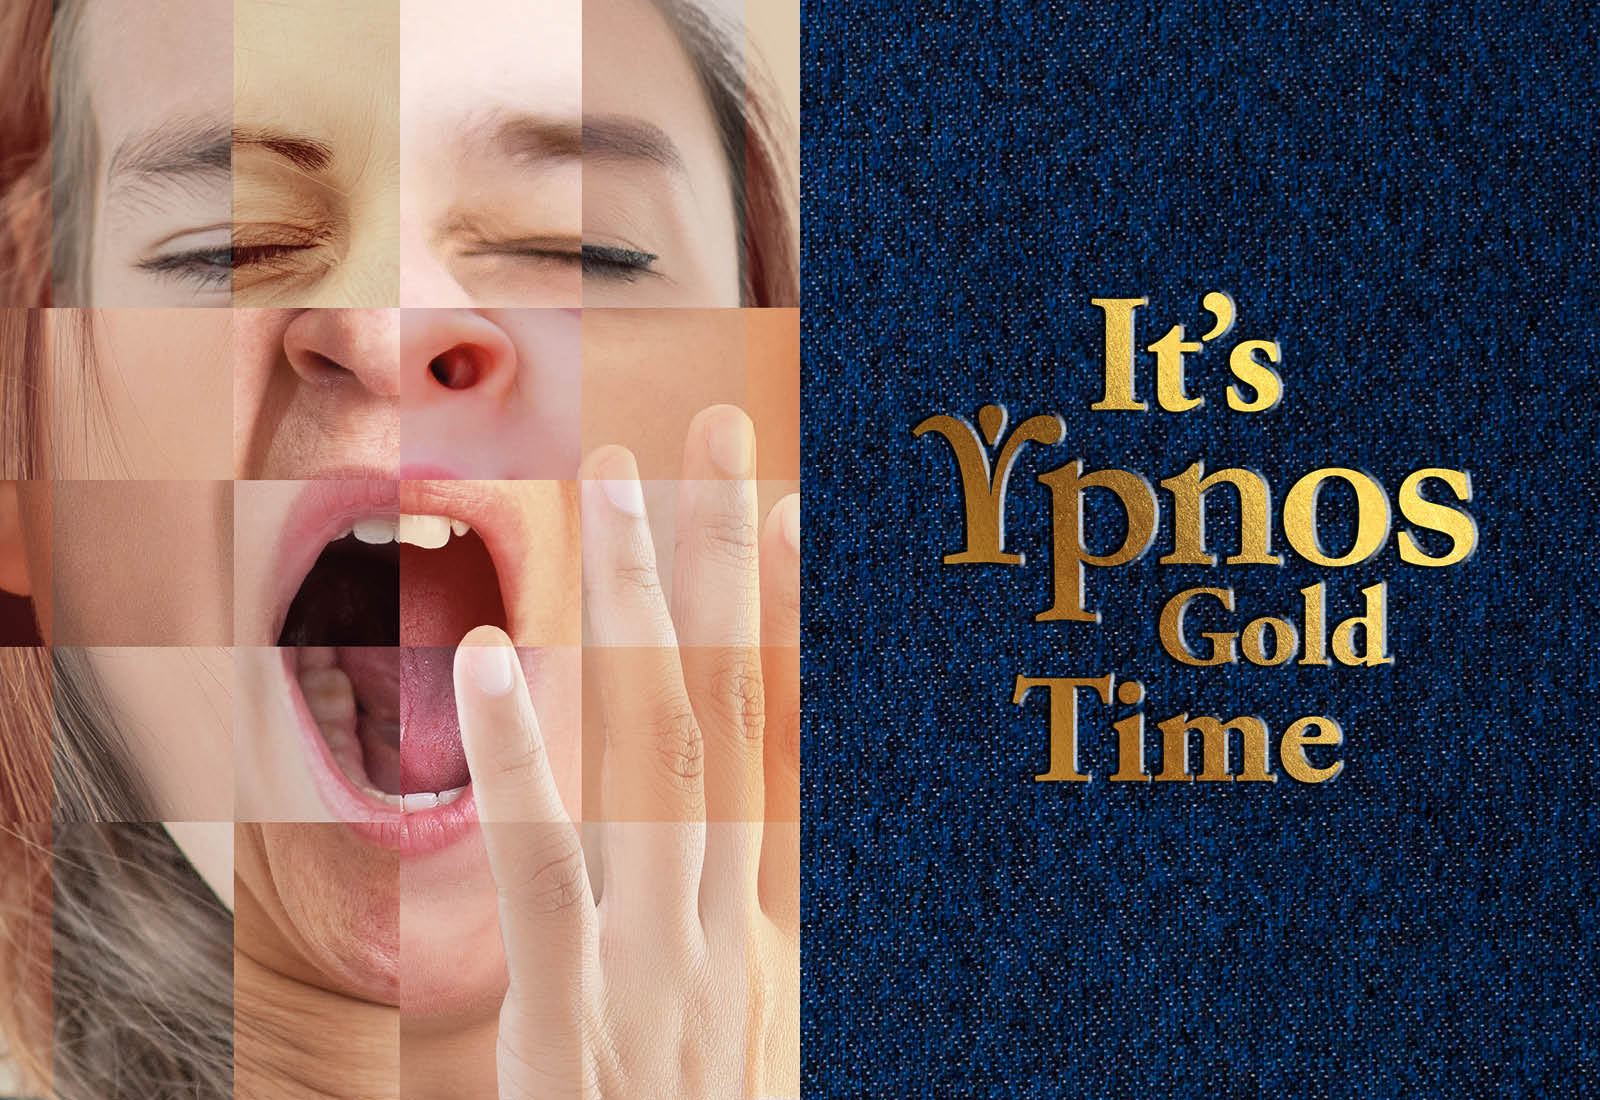 It's Ypnos Gold time